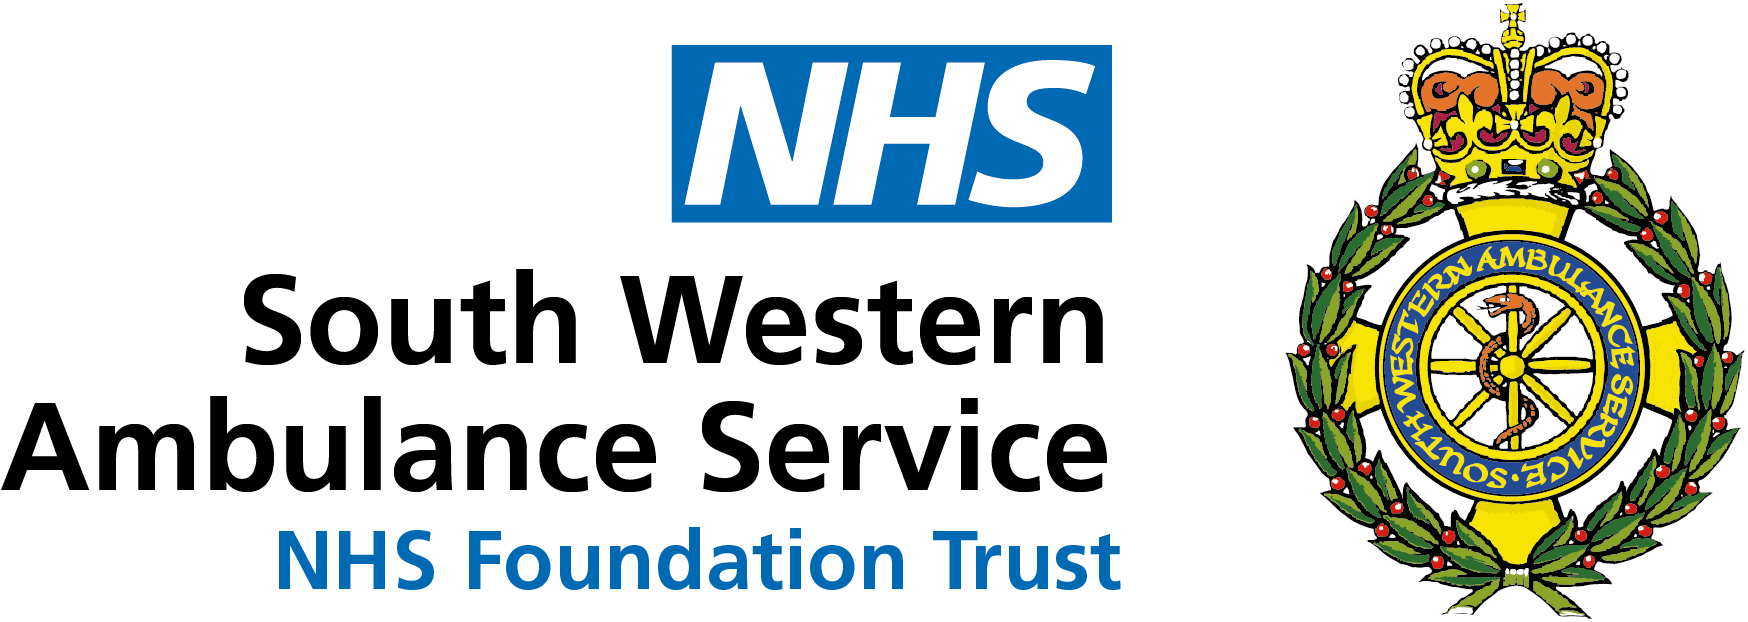 South Western Ambulance Service - NHS Foundation Trust